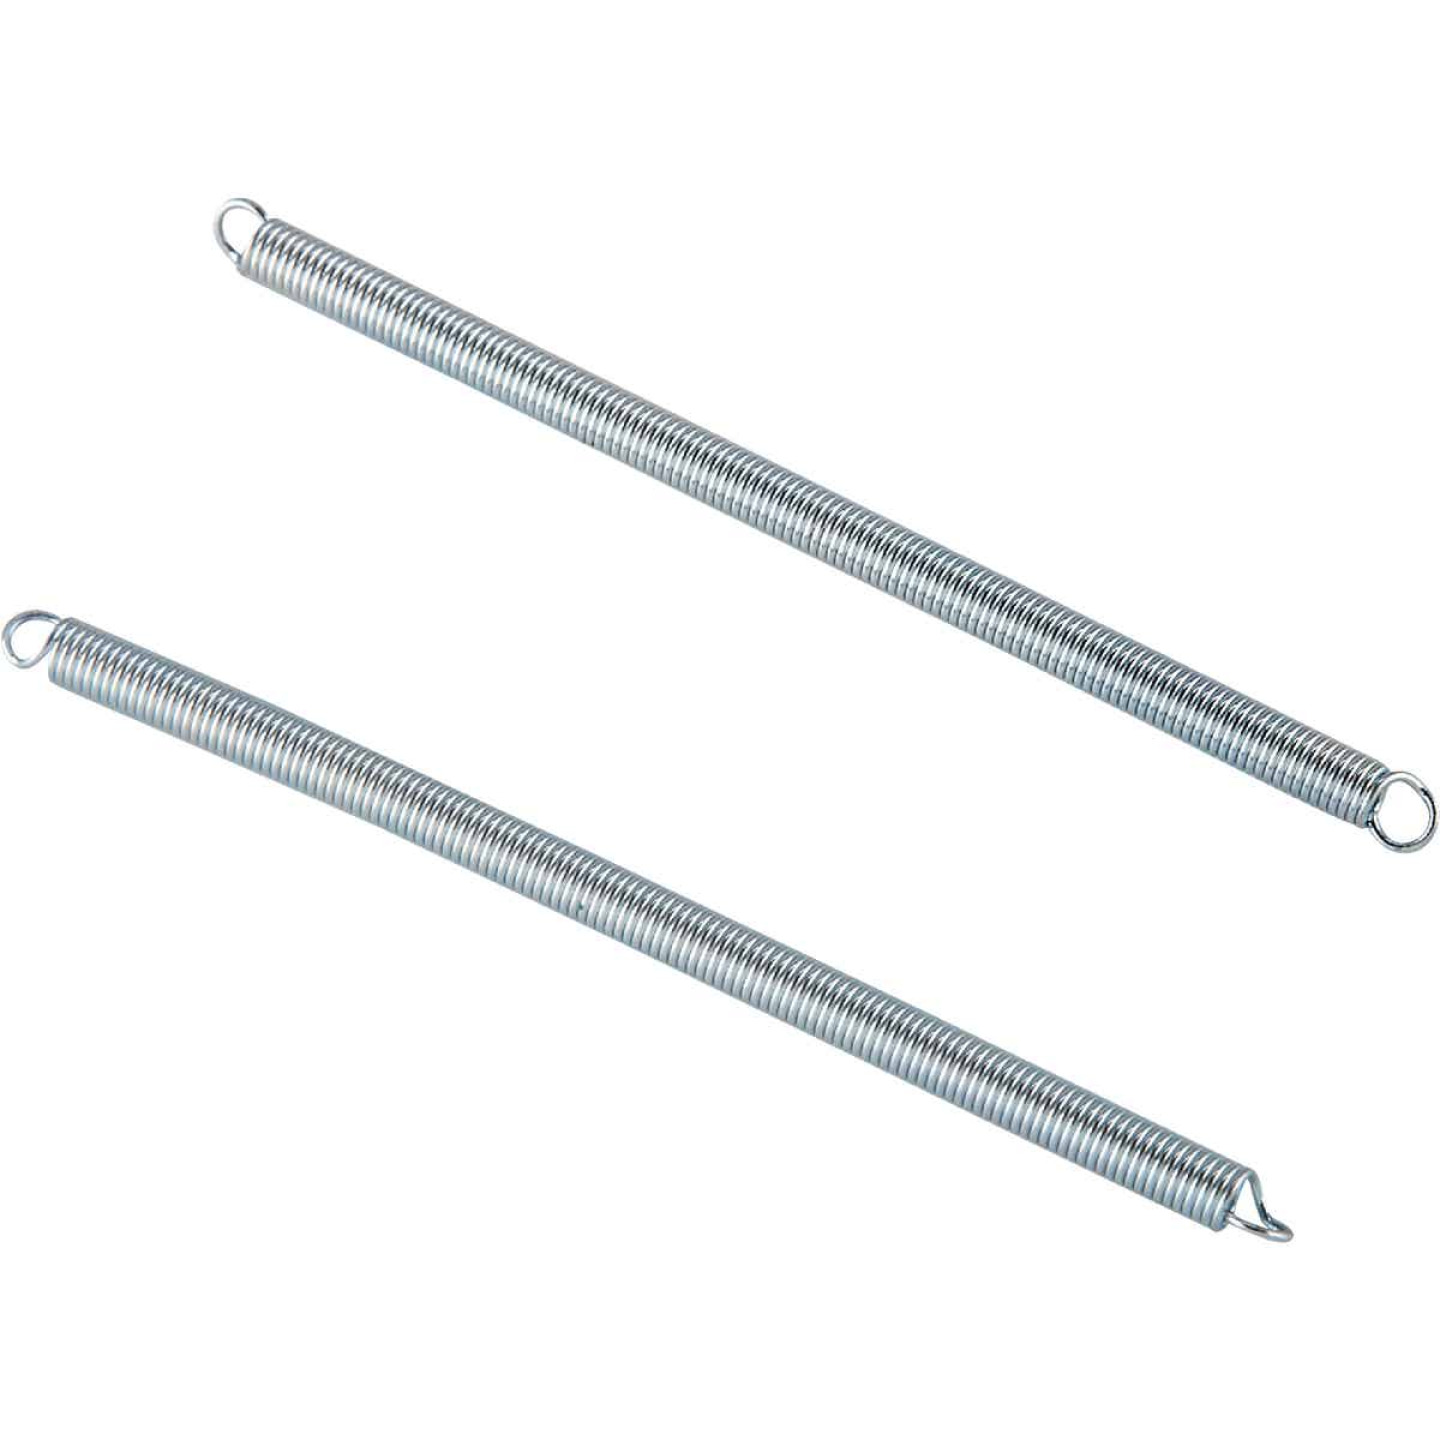 Century Spring 6 In. x 5/16 In. Extension Spring (2 Count) Image 1